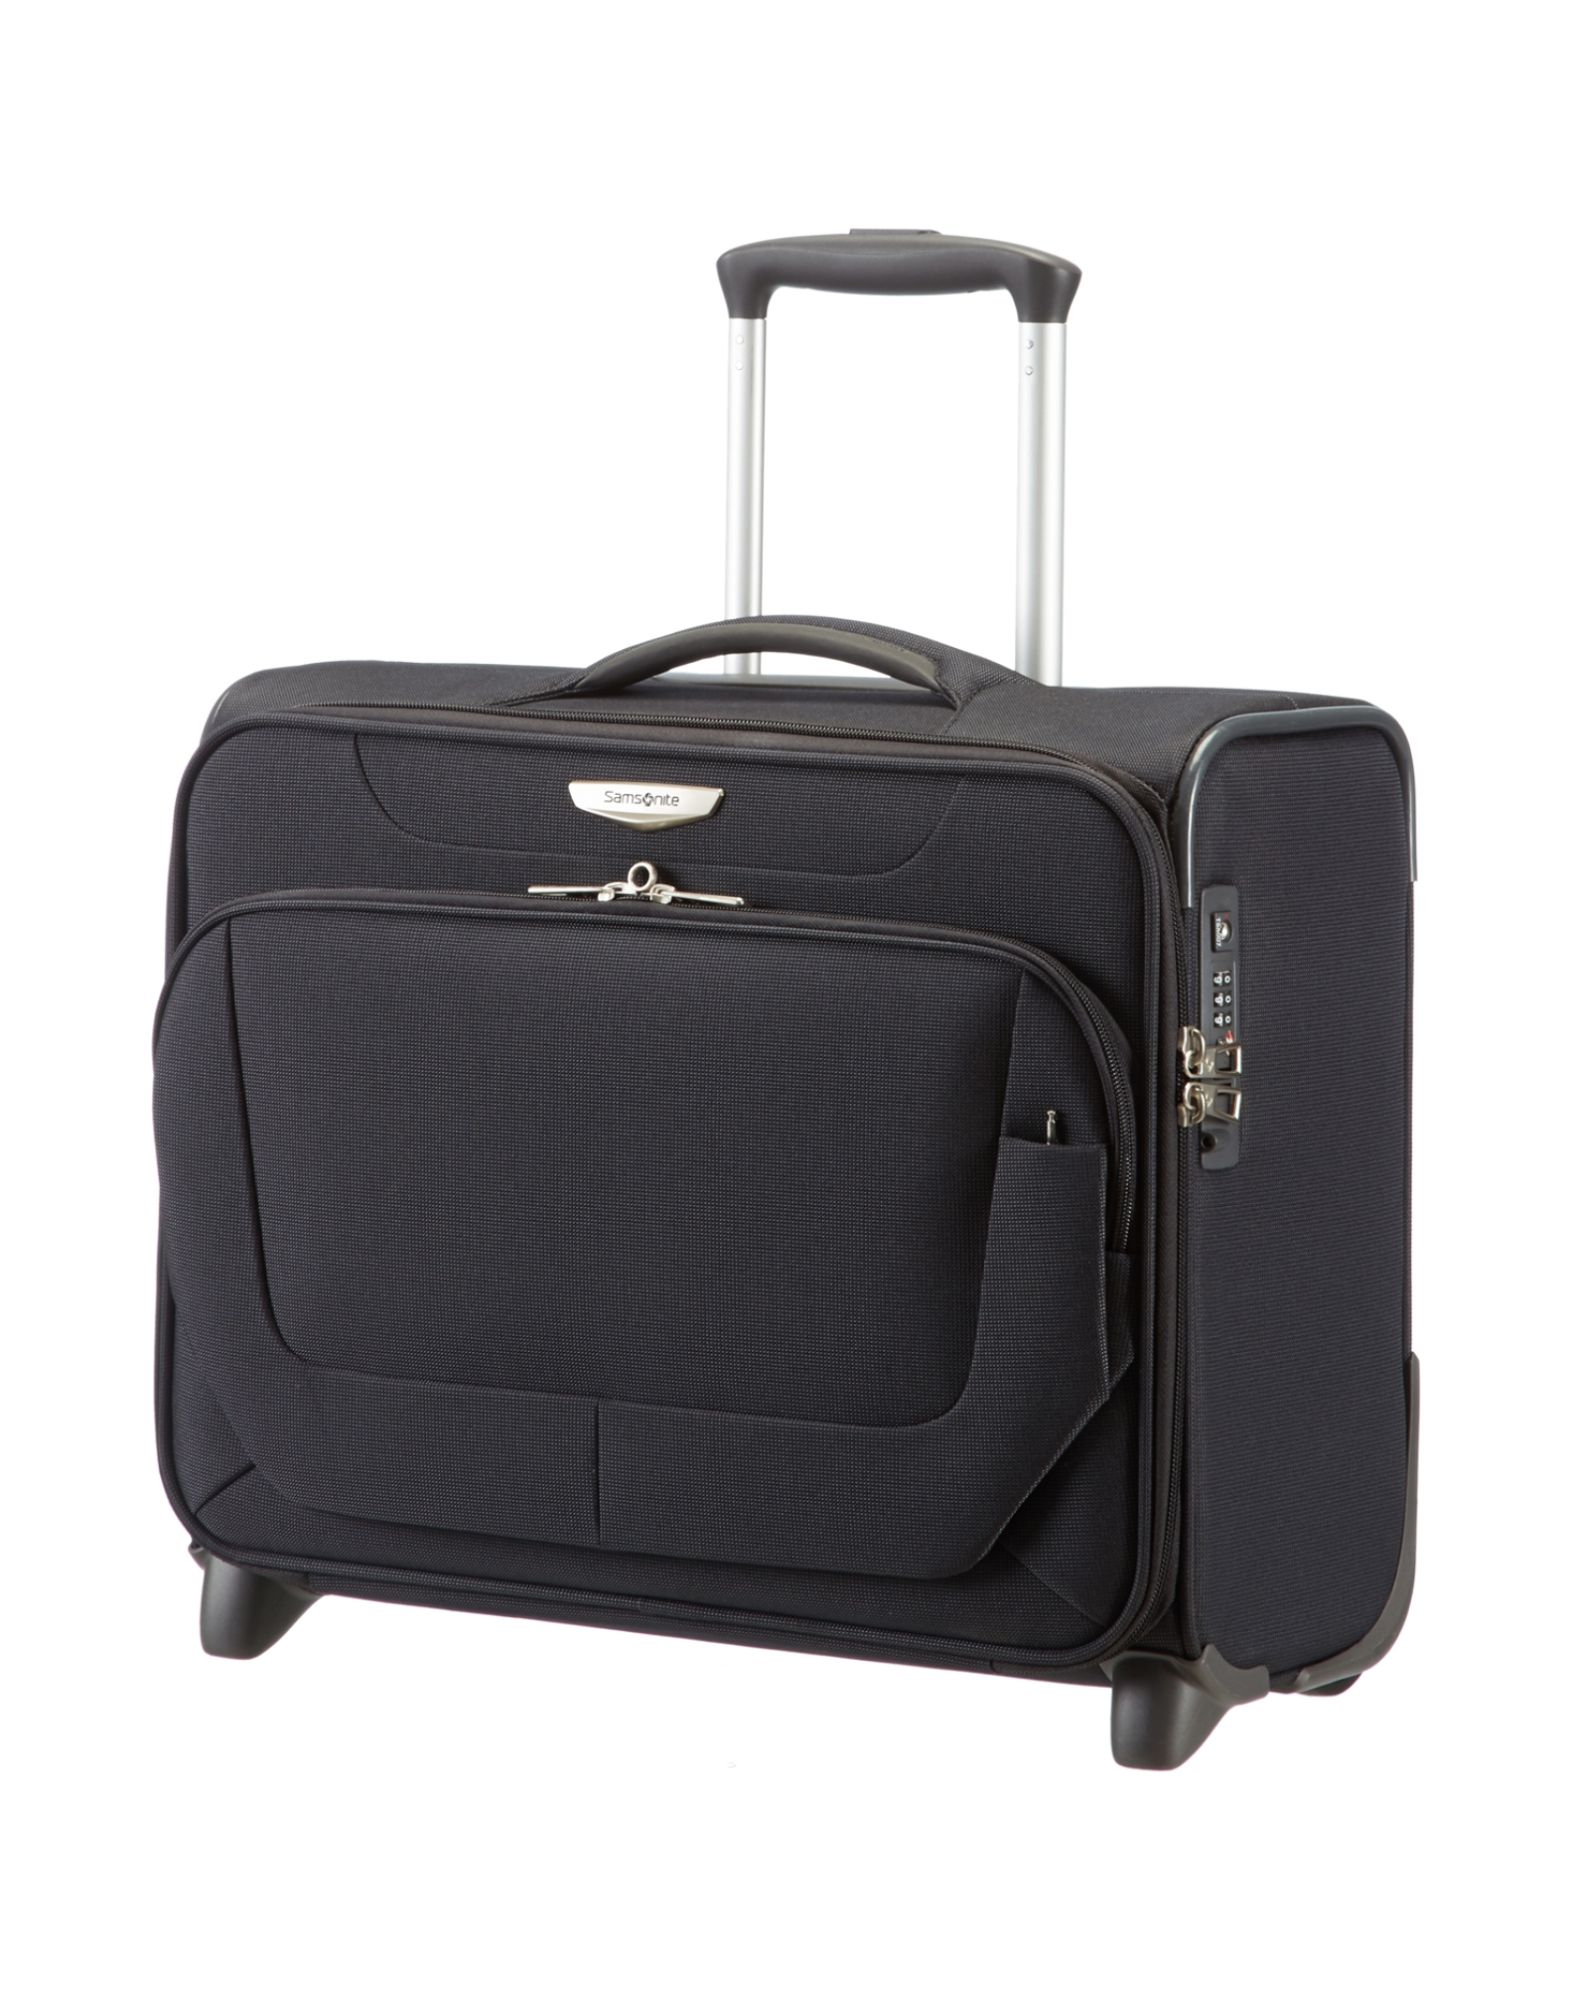 Samsonite Wheeled Luggage In Black For Men Lyst